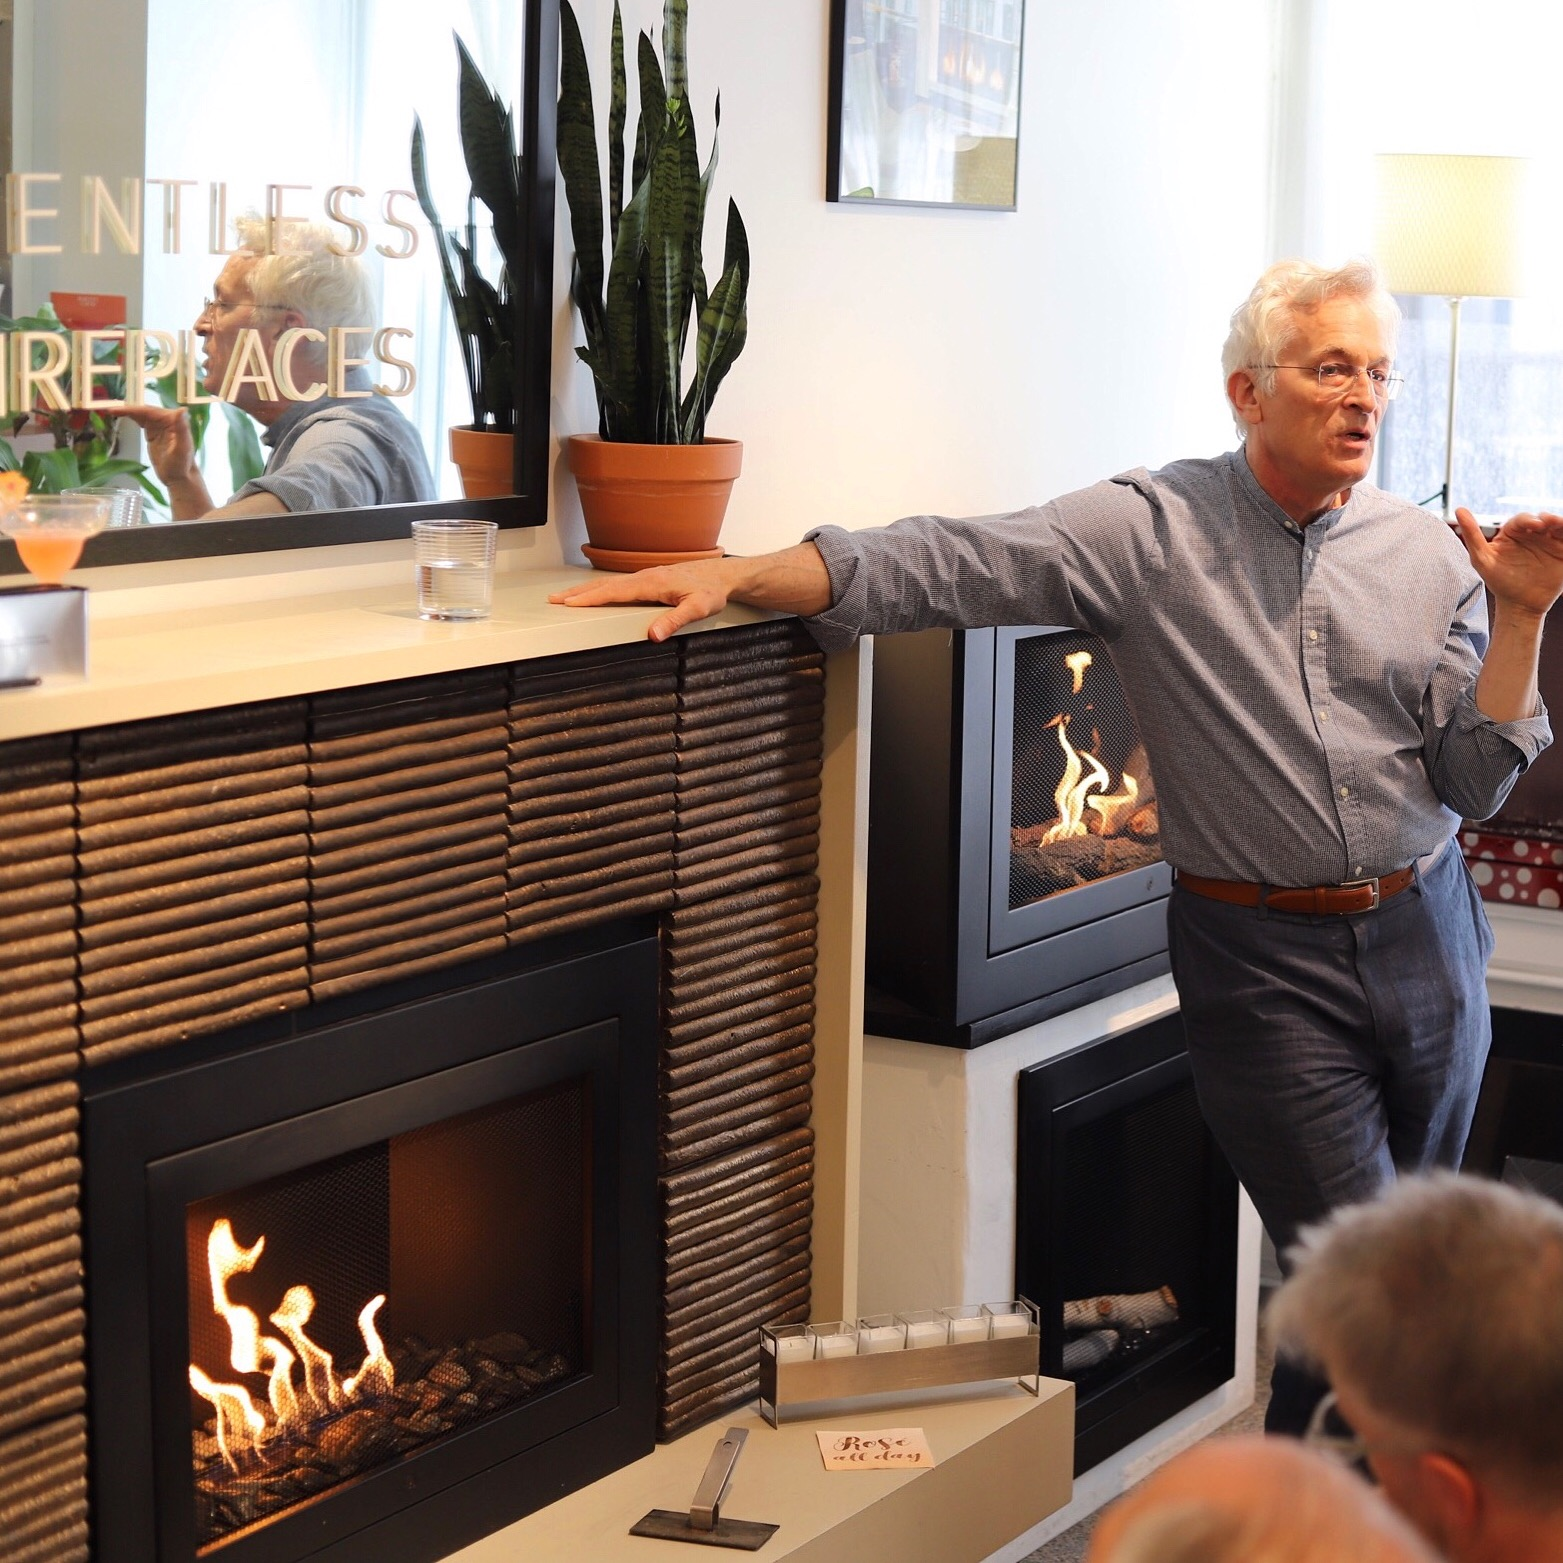 Pictured: Arthur Lasky, HearthCabinet® founder & NCARB  Fireplace surround designed by  Wesley Moon  with custom exterior tile by  Cocobolo Design